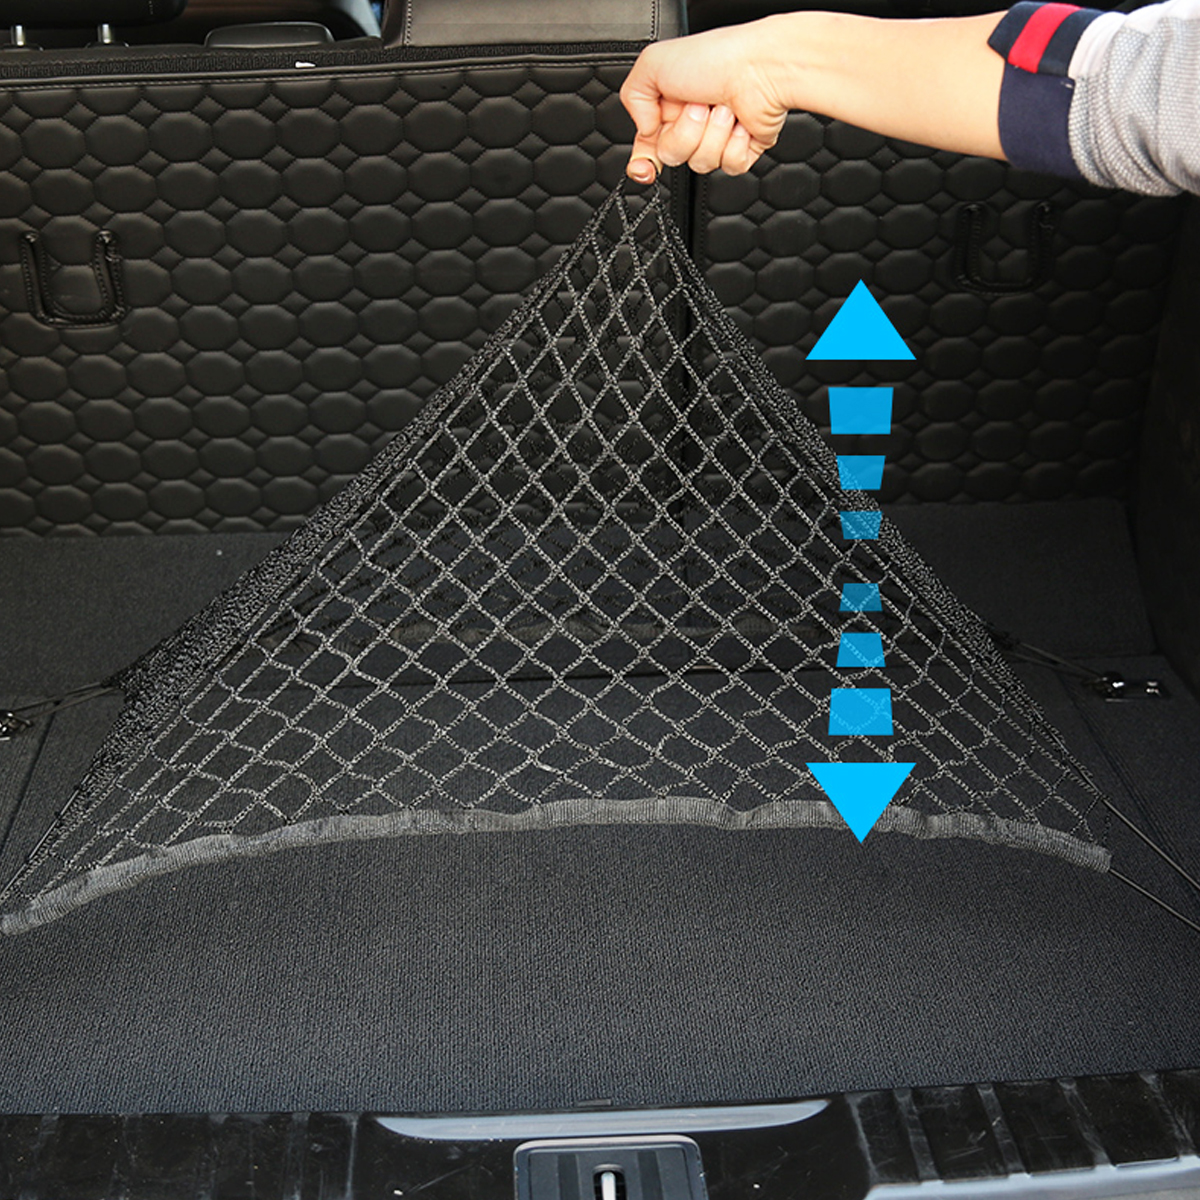 Universal 70X70cm PP Car Rear Trunk Storage Net Rear Cargo Elastic Mesh Organizer